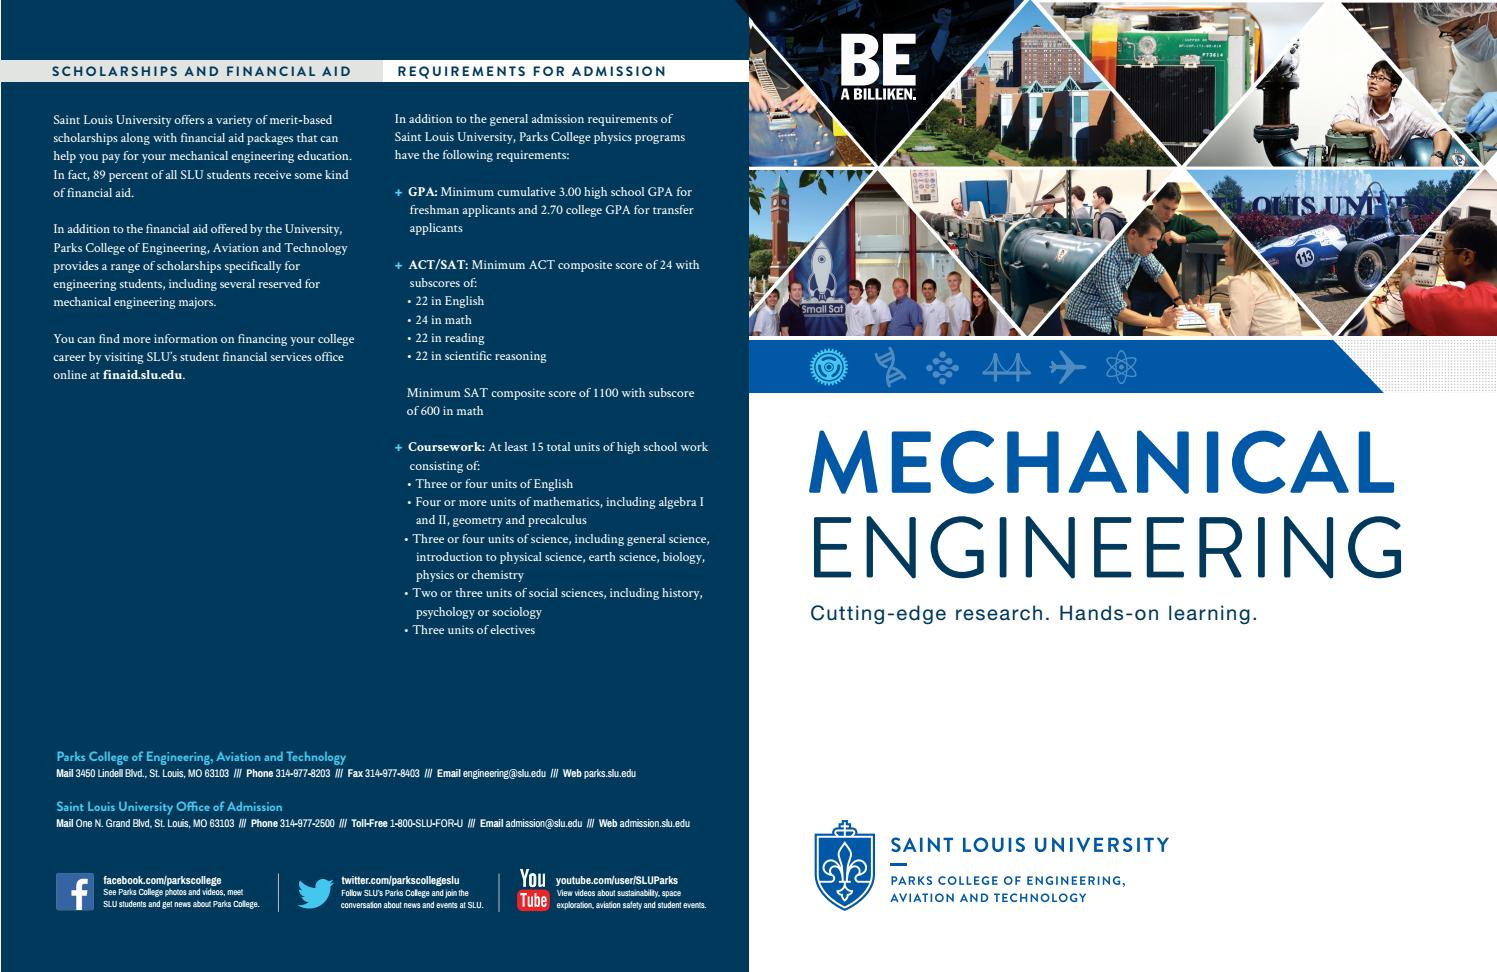 Department of Mechanical Engineering Brochure by Parks College of